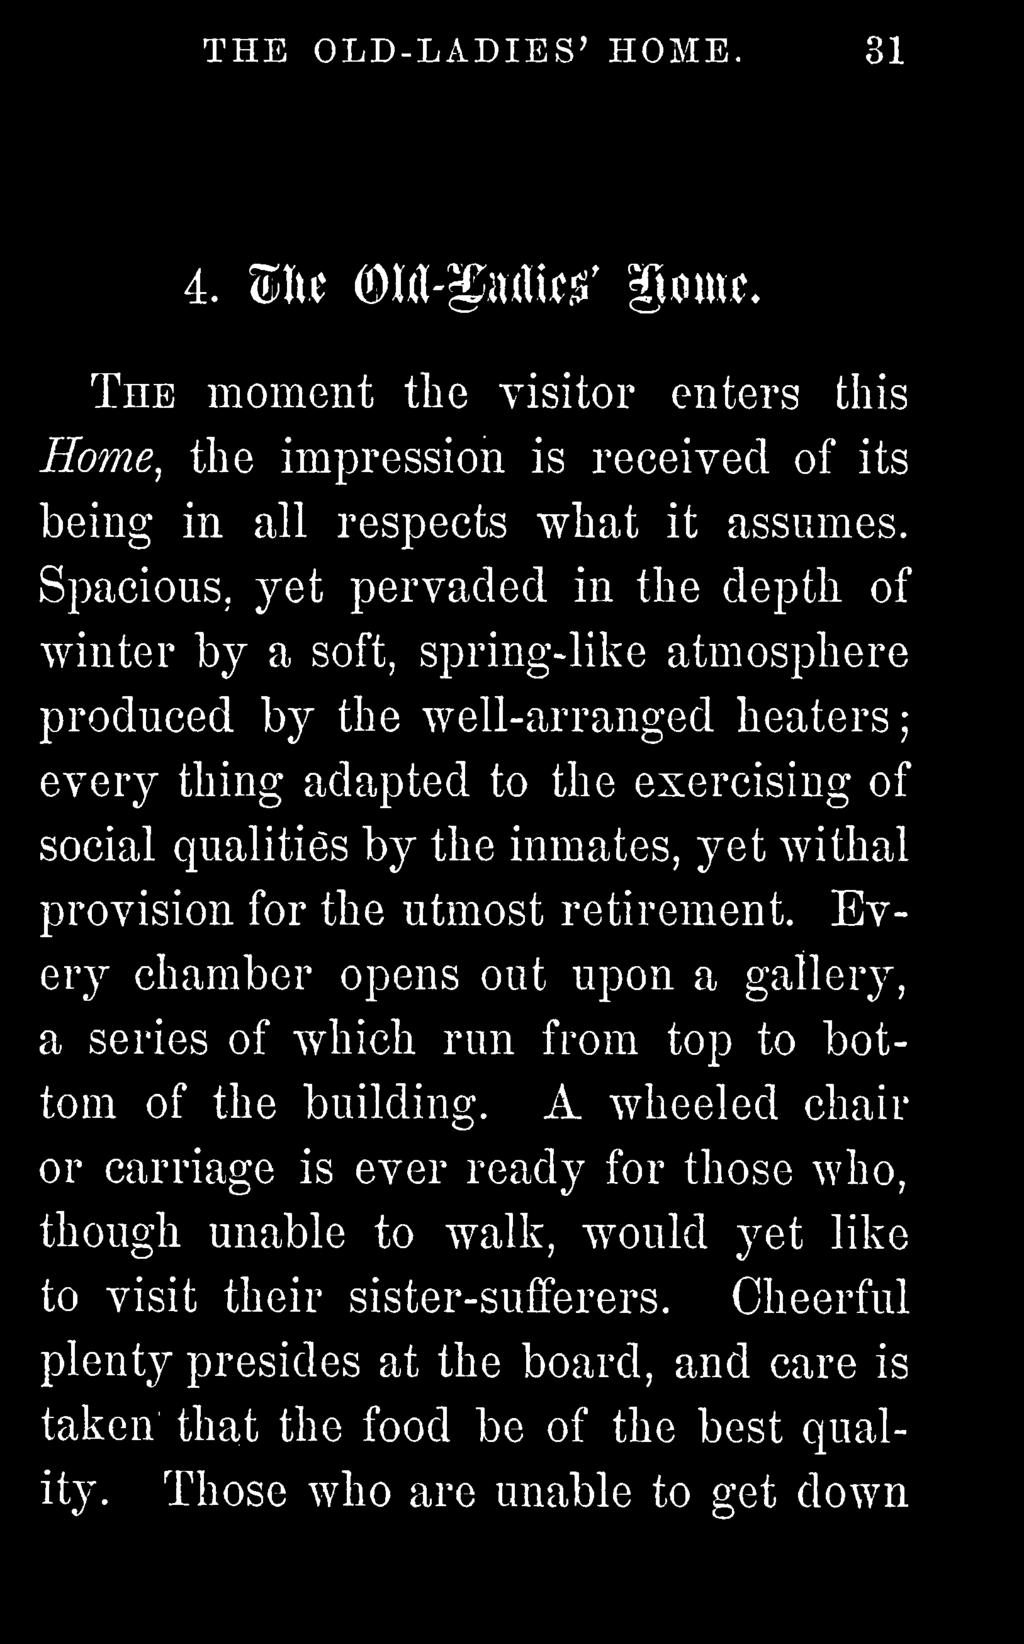 inmates, yet withal provision for the utmost retirement. Every chamber opens out upon a gallery, a series of which run from top to bottom of the building.